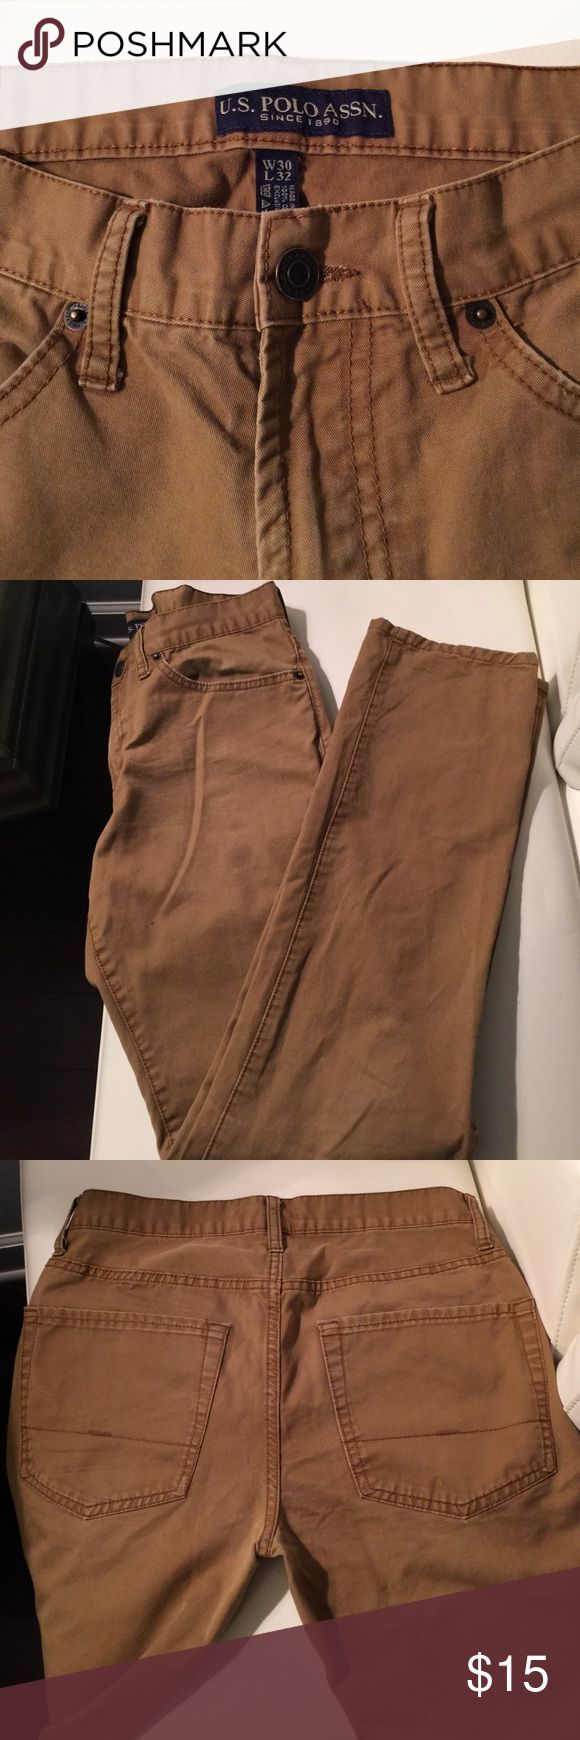 US Polo Association Tan jeans size 30 x 32 Tan color. No tears or stains. Straight leg U.S. Polo Assn. Jeans Straight Leg